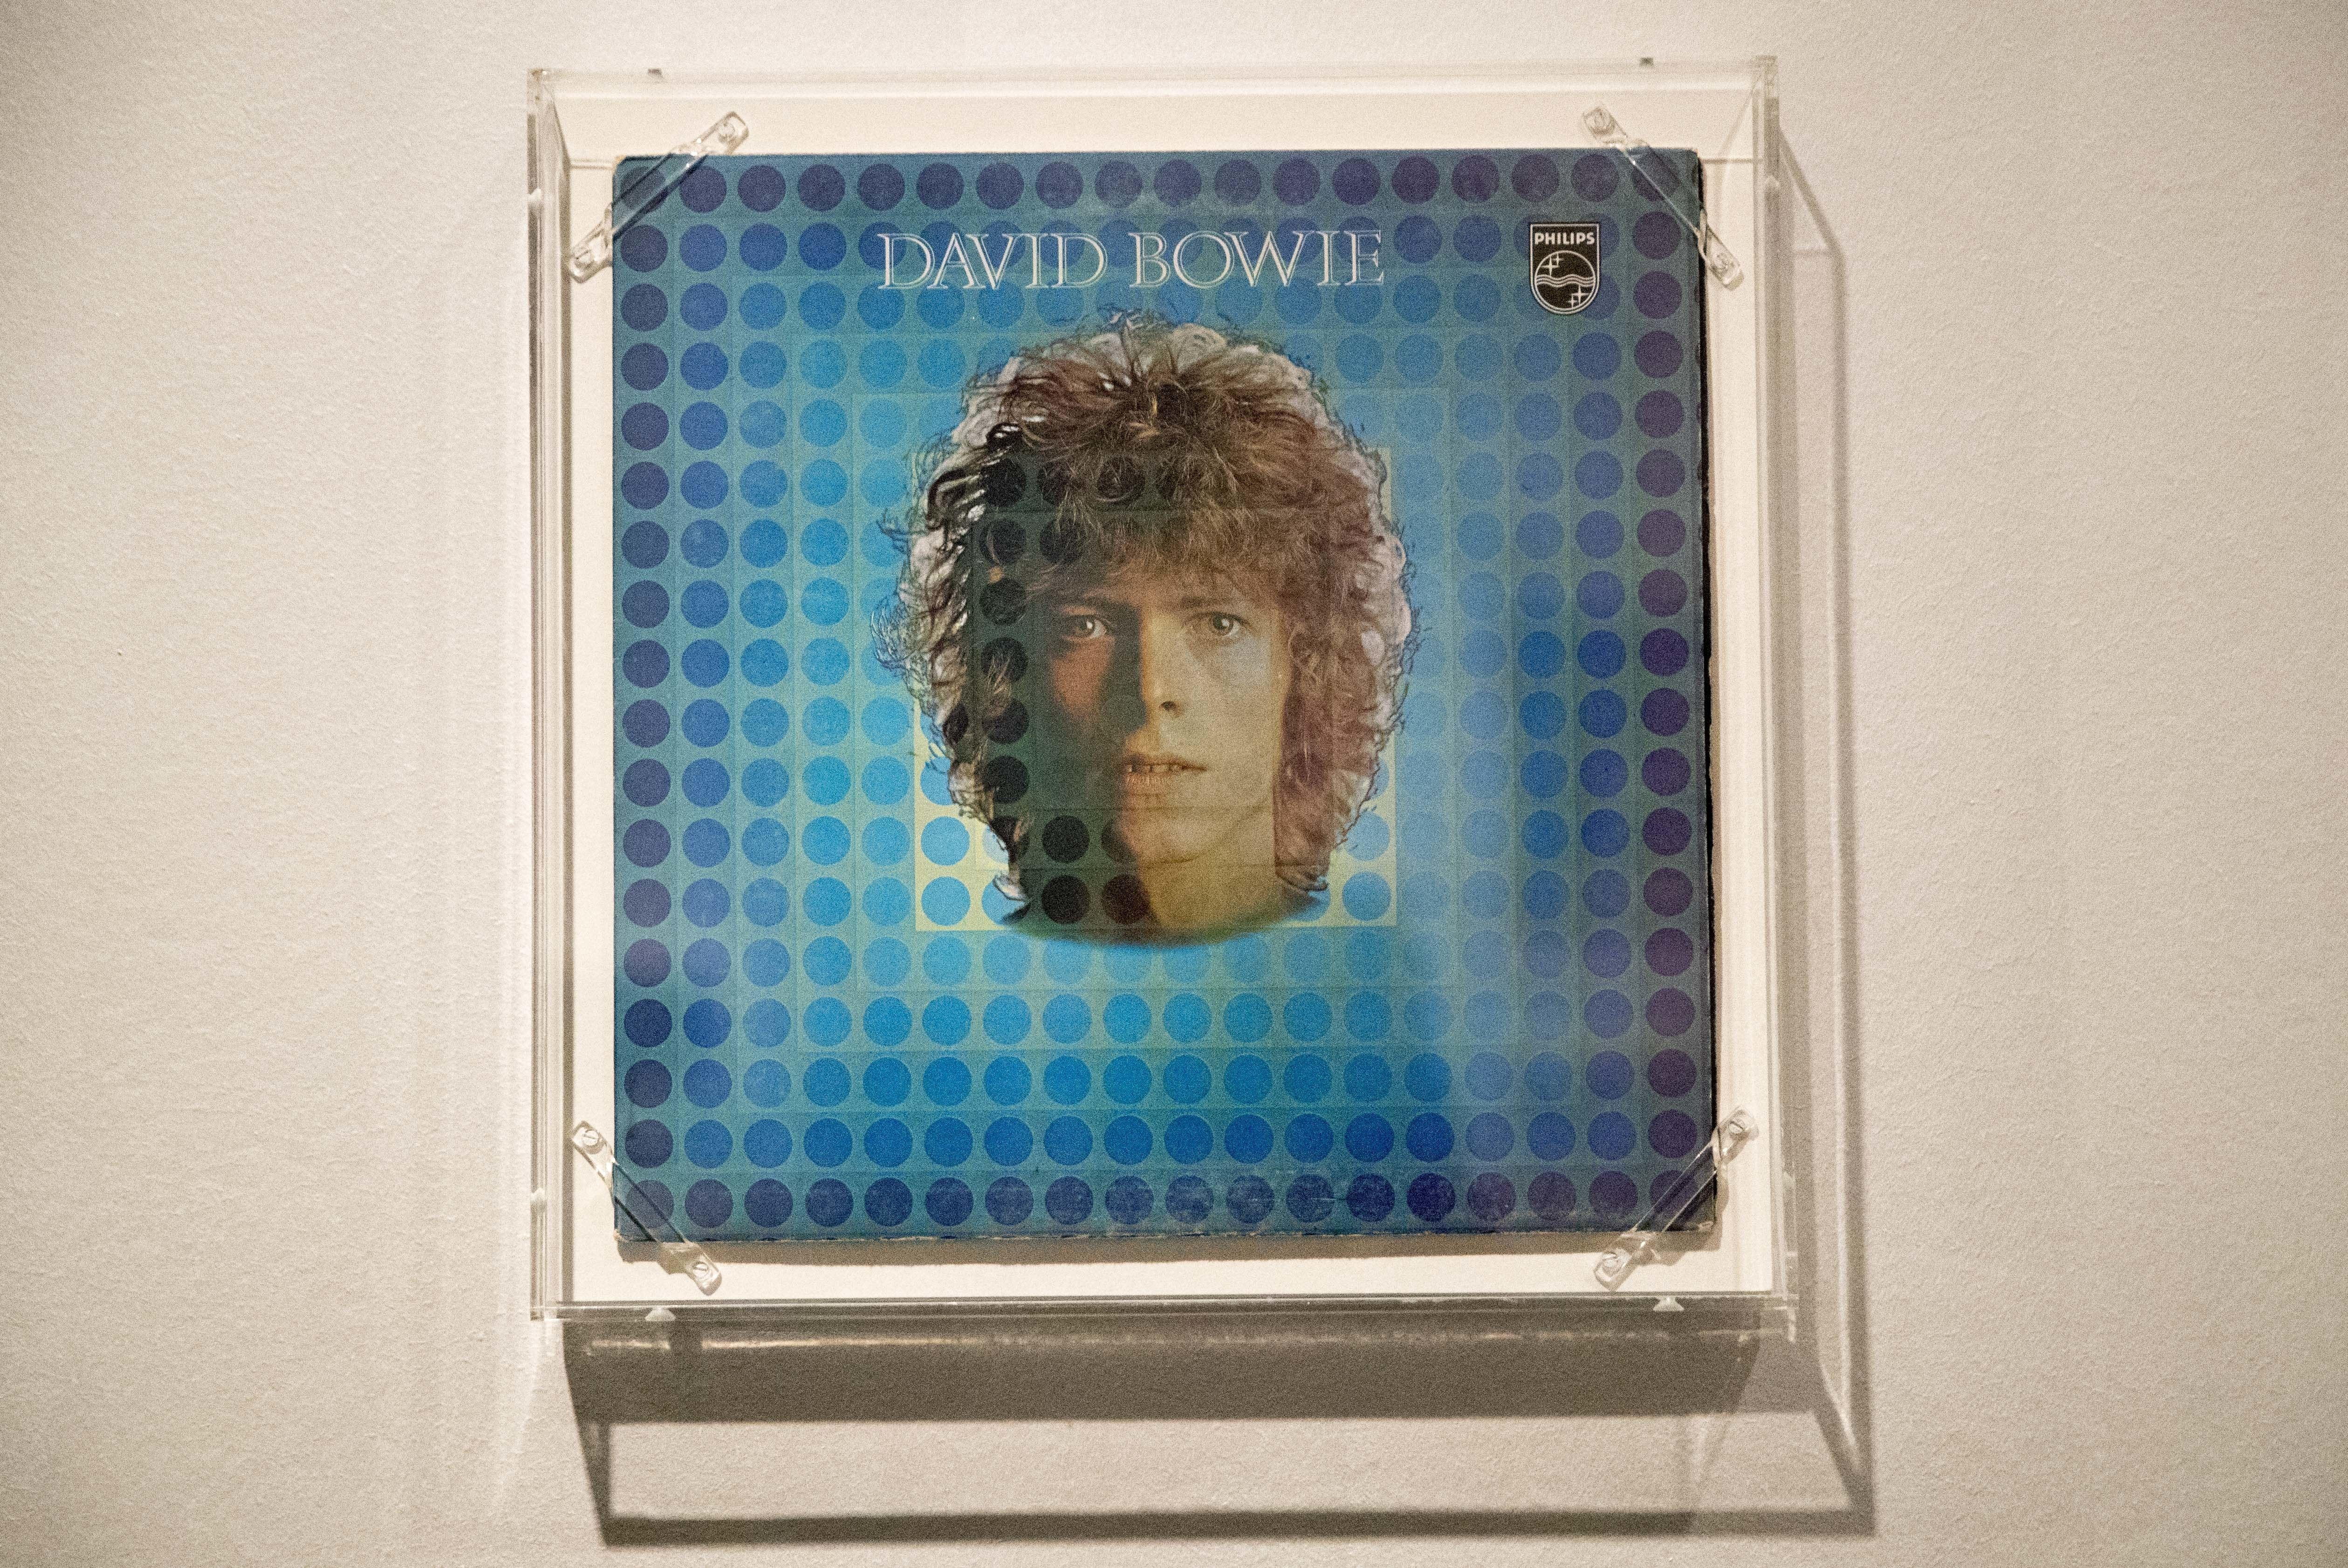 Ground Control Sends Up Coin Honoring David Bowie